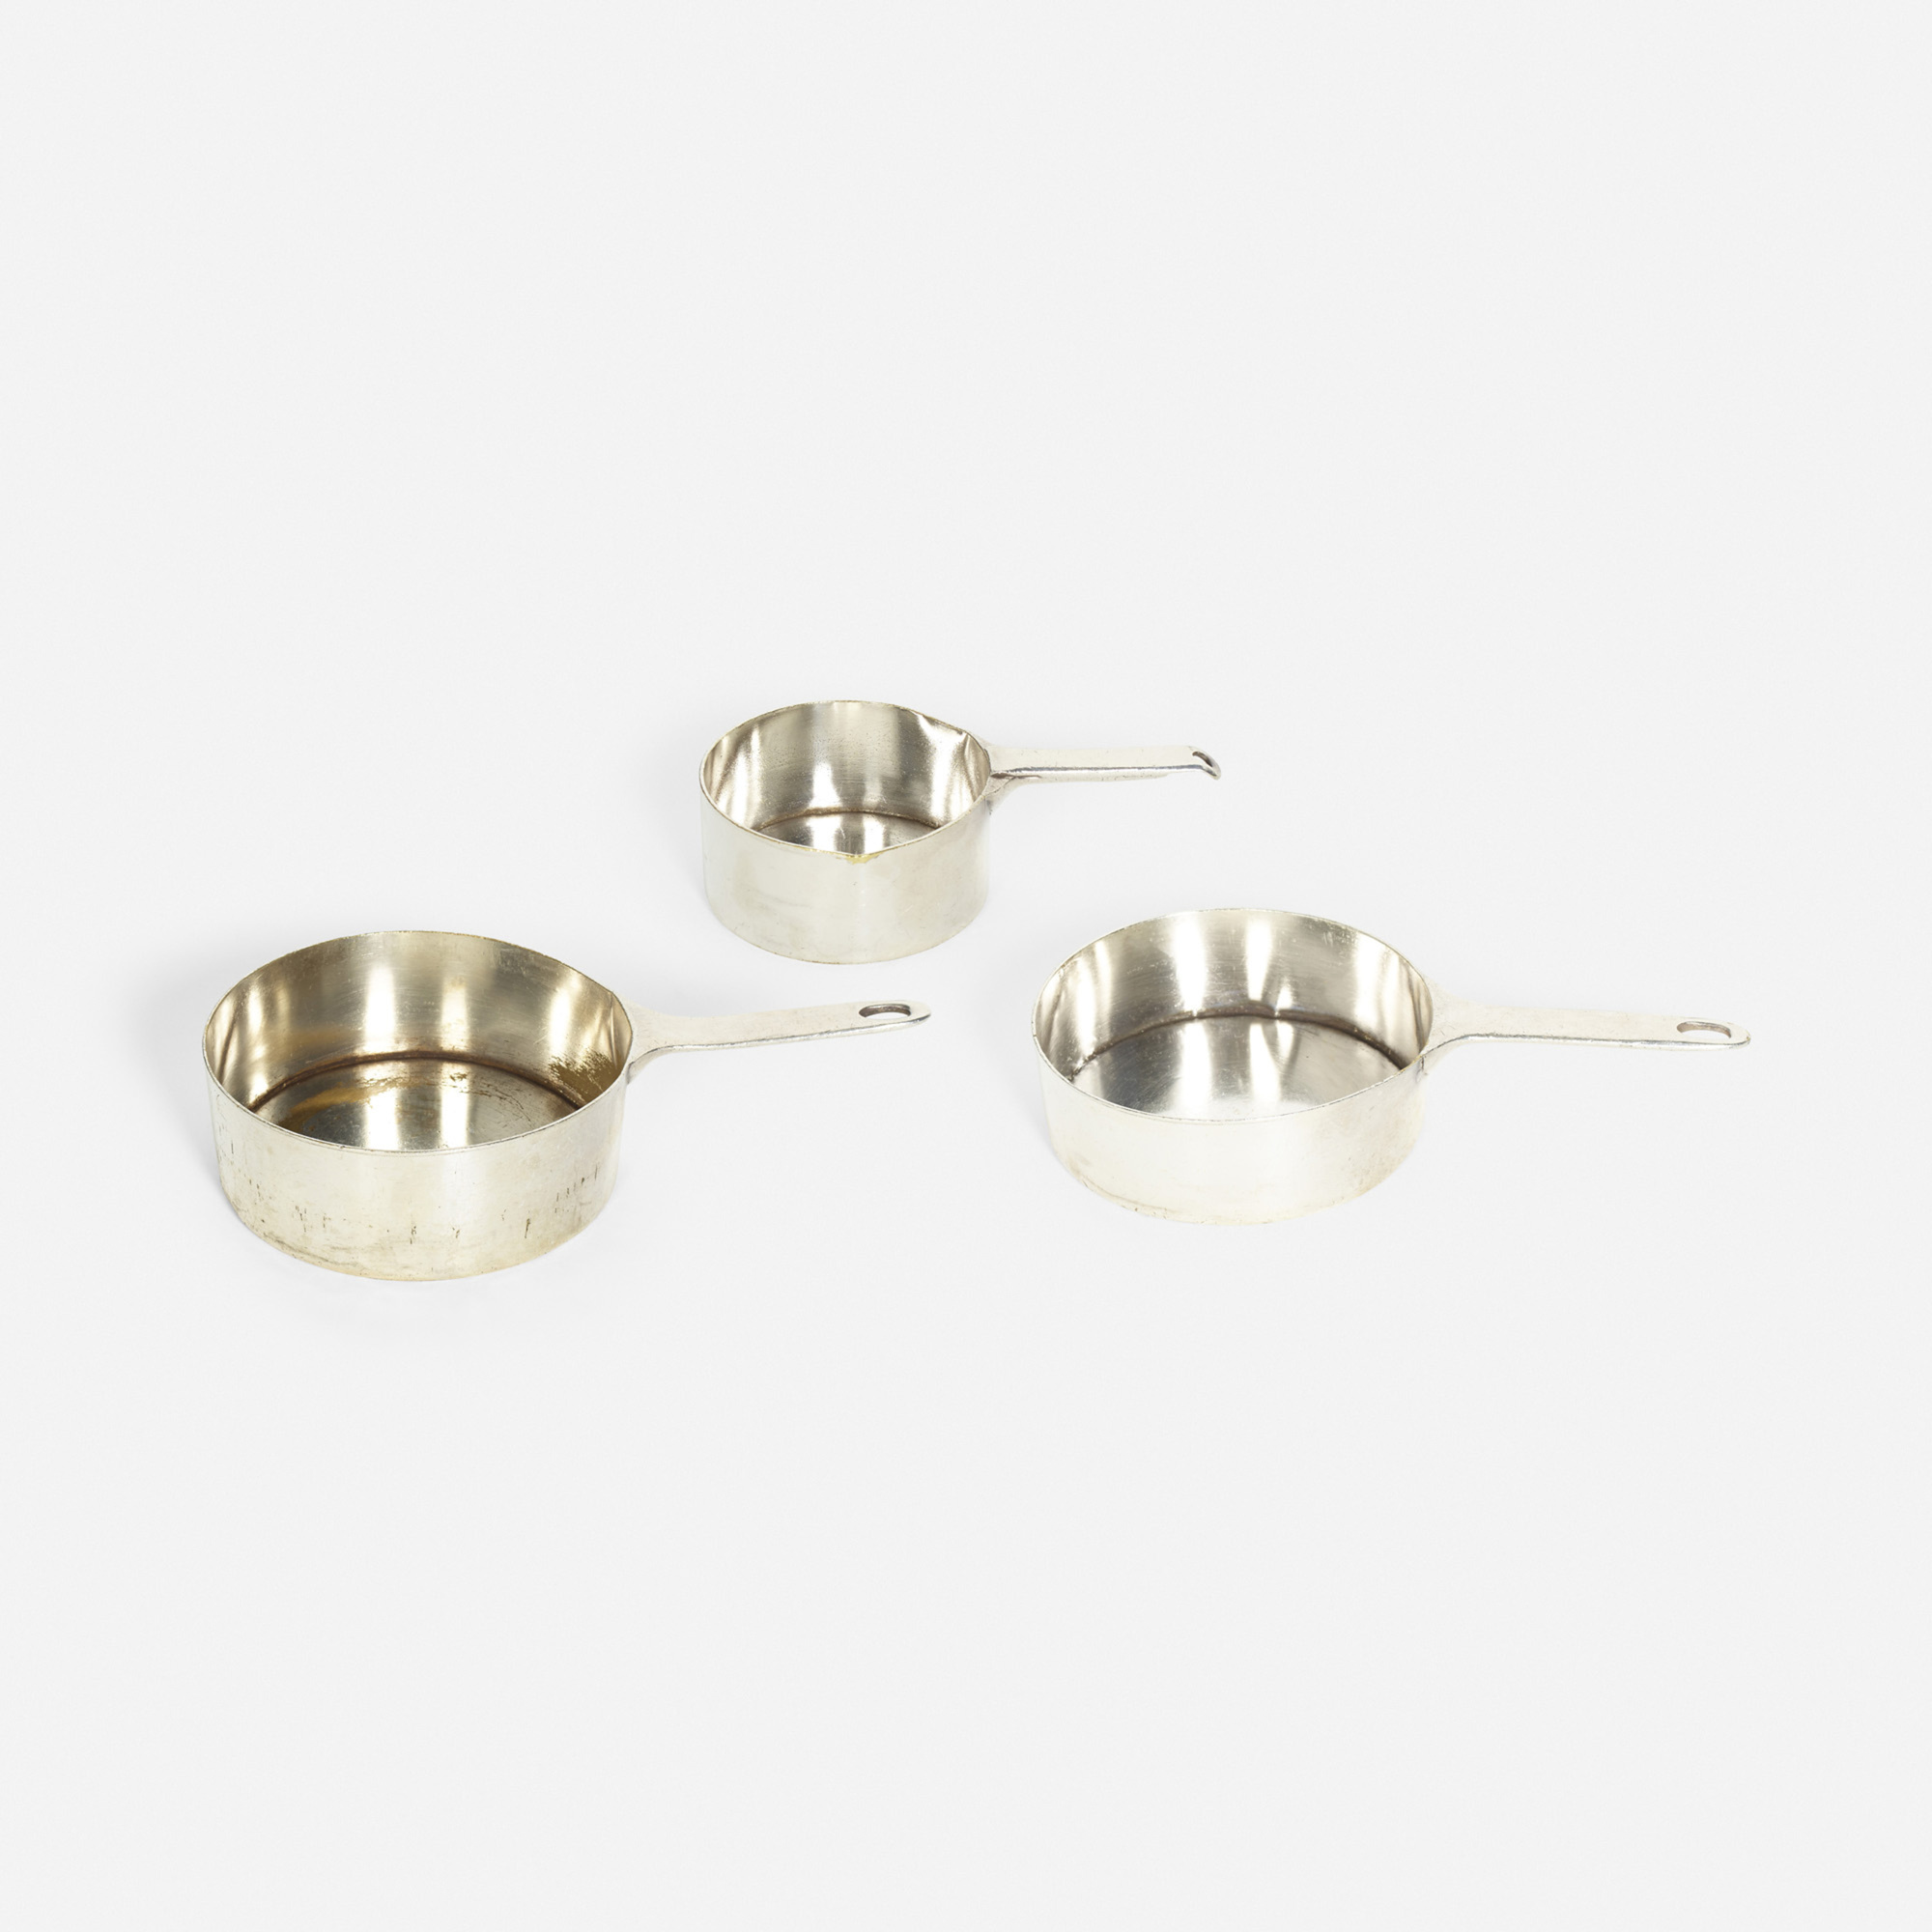 858: Garth and Ada Louise Huxtable / sauce pots from the kitchen of The Four Seasons, set of three (1 of 1)